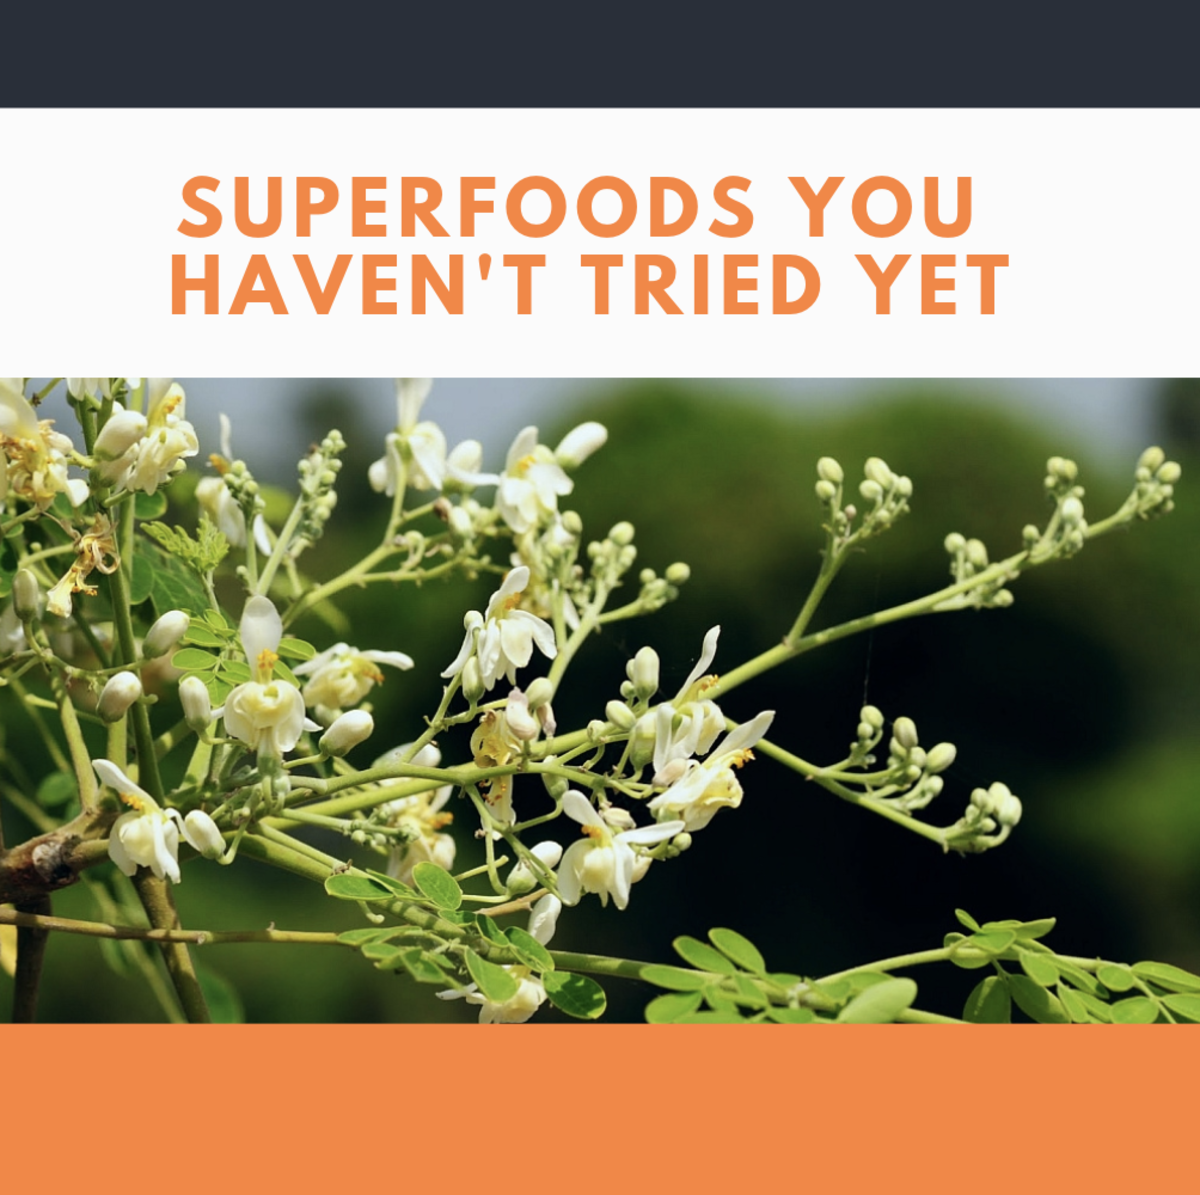 5 Superfoods You Haven't Tried Yet